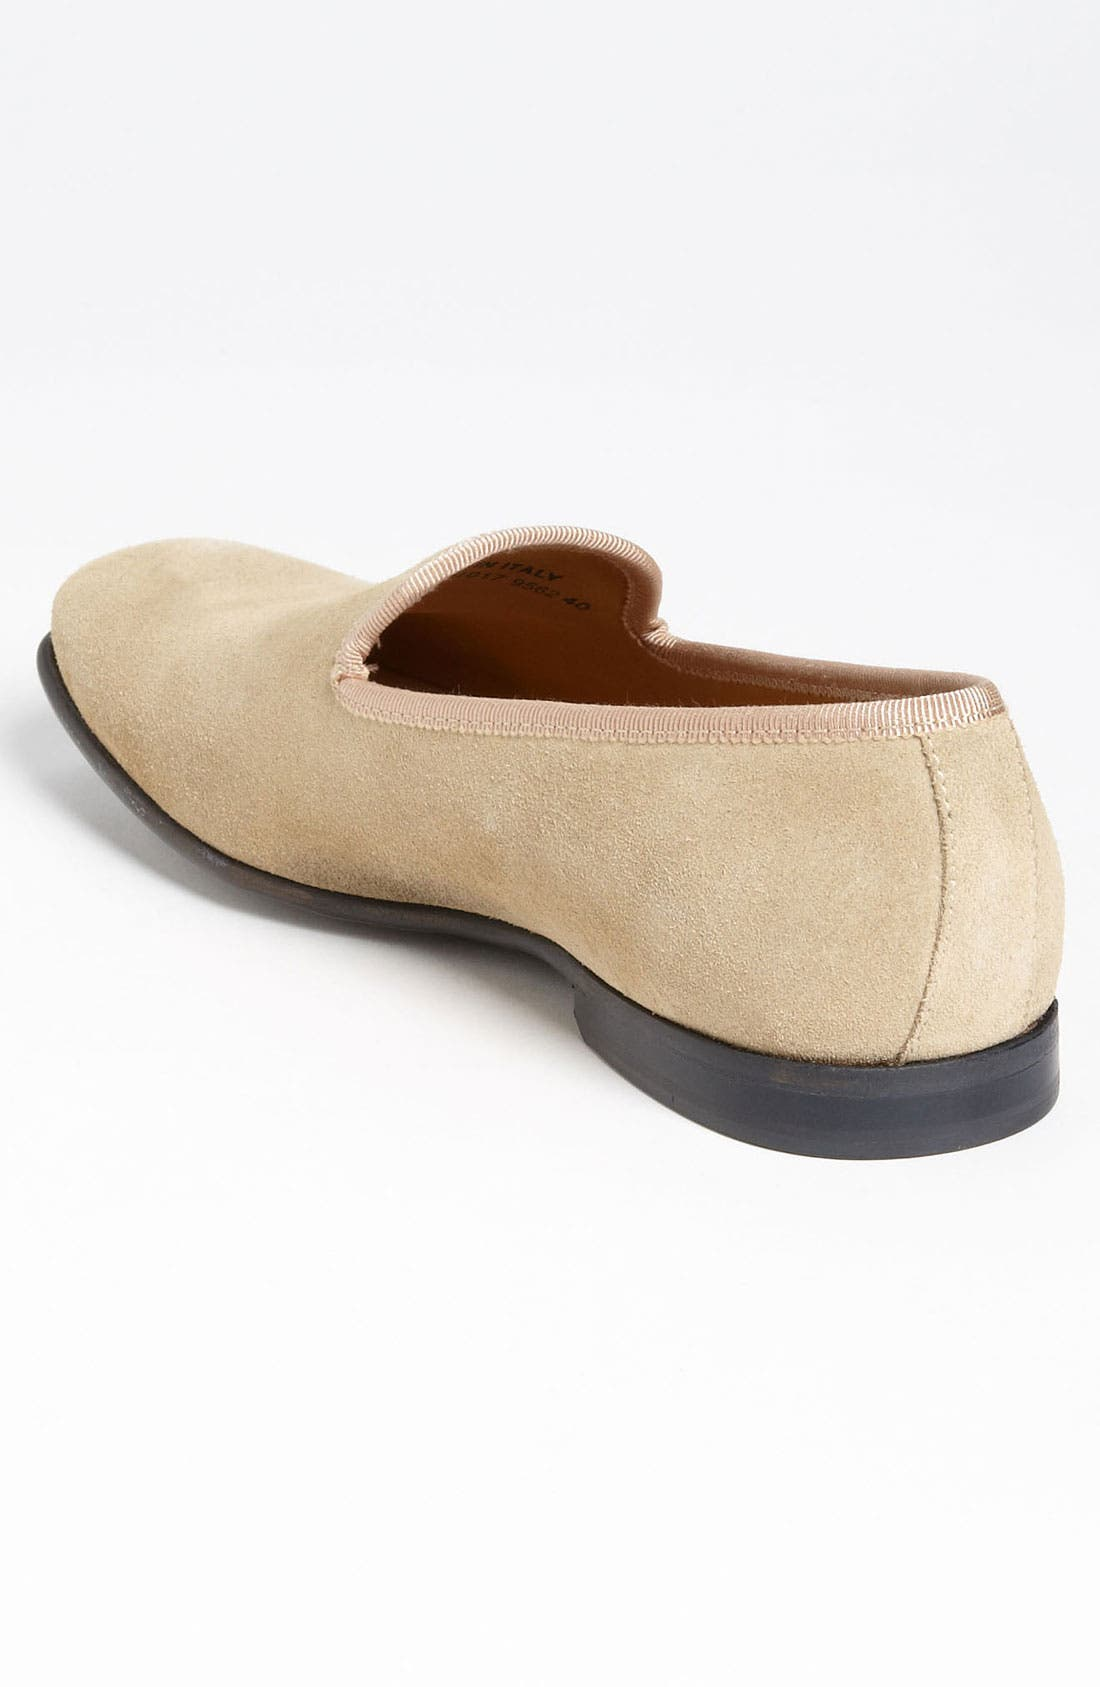 Alternate Image 2  - McQ by Alexander McQueen Suede Loafer